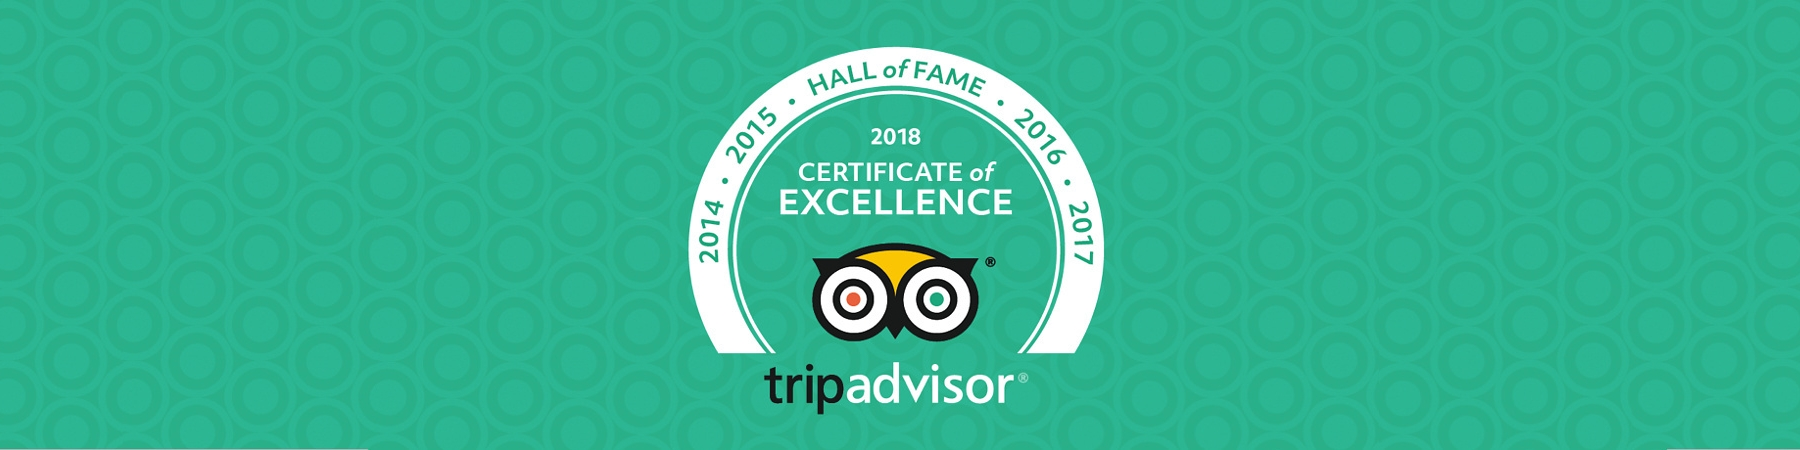 Trip Advisor Hall of Fame 2018